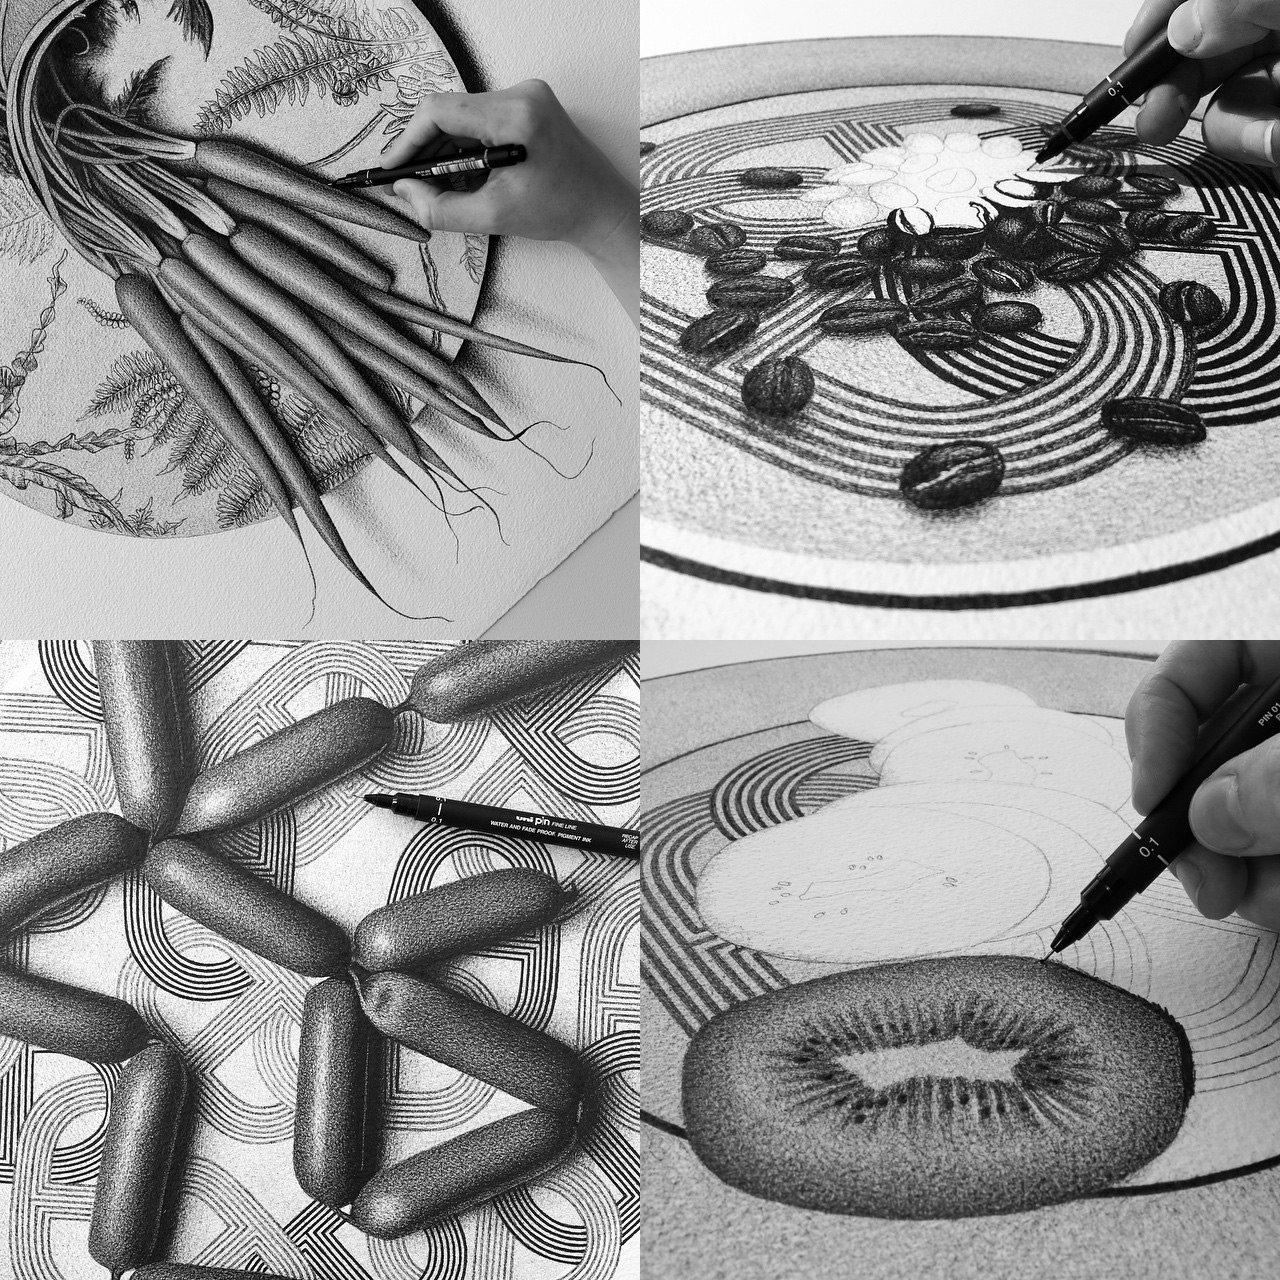 Pen And Pencil >> 50 Photorealistic Foods Drawings in 50 Days by CJ Hendry ...